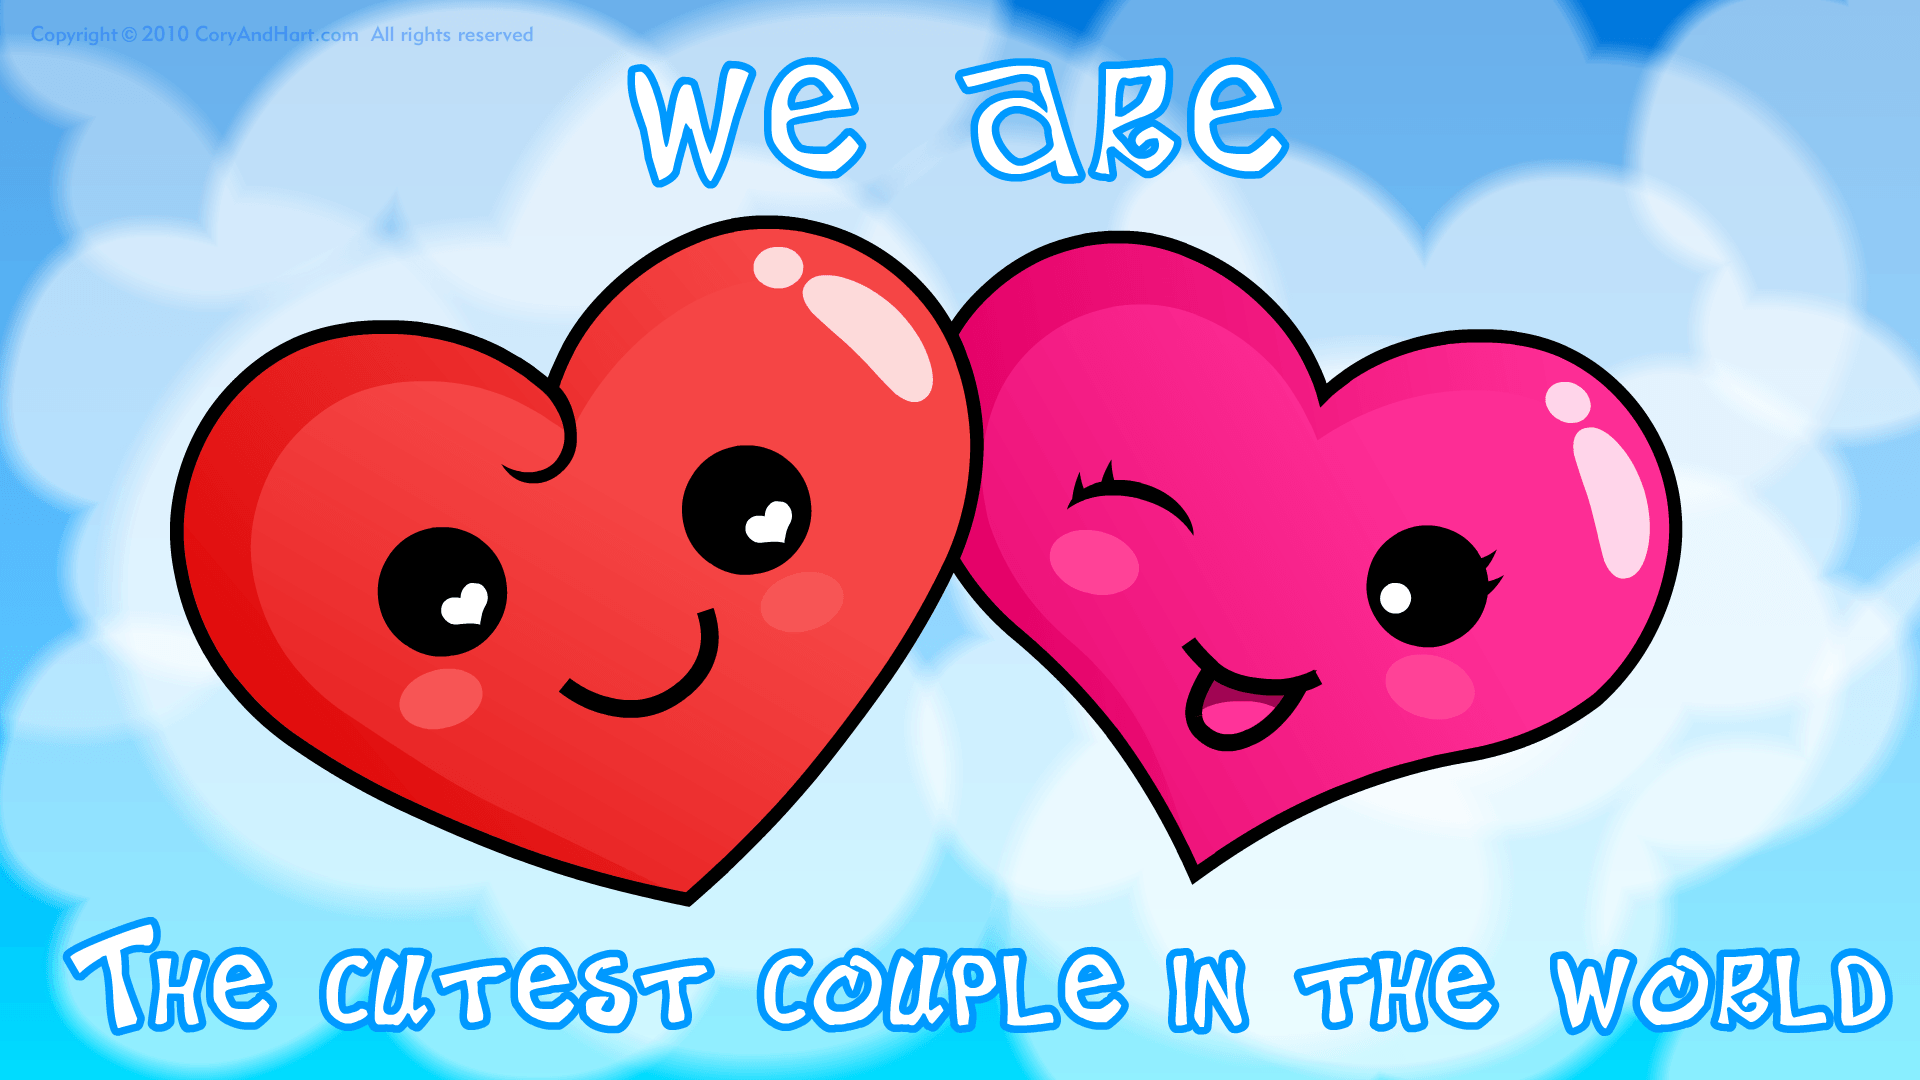 Love Very cute Wallpaper : Free Love Wallpapers Gallery - Wallpaper cave